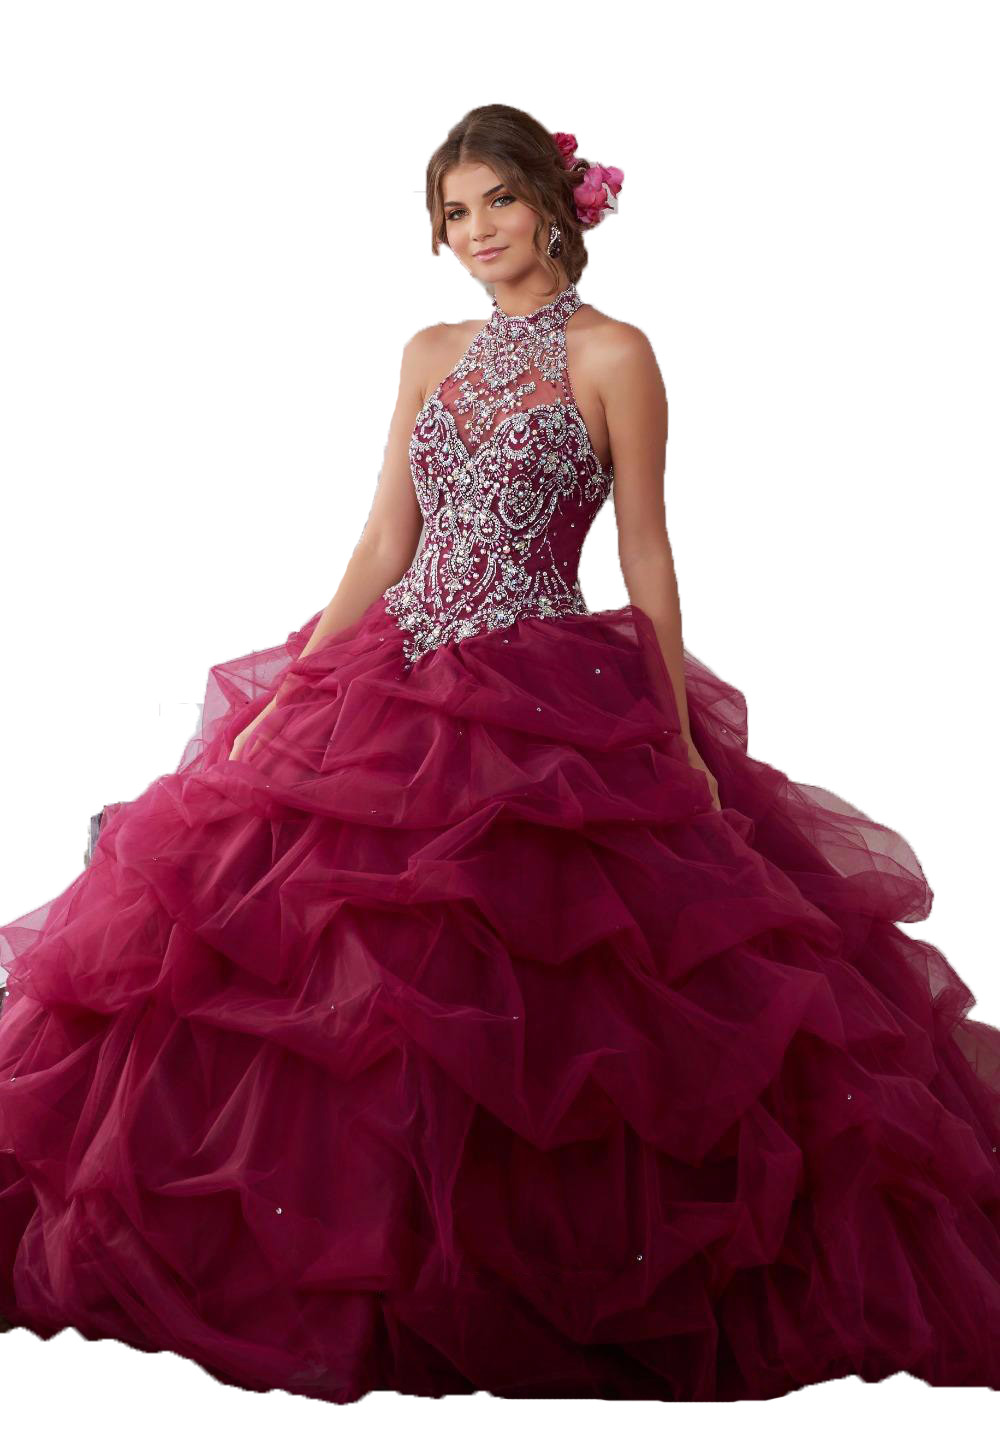 Popular Dark Red Quinceanera Dresses - 191.0KB